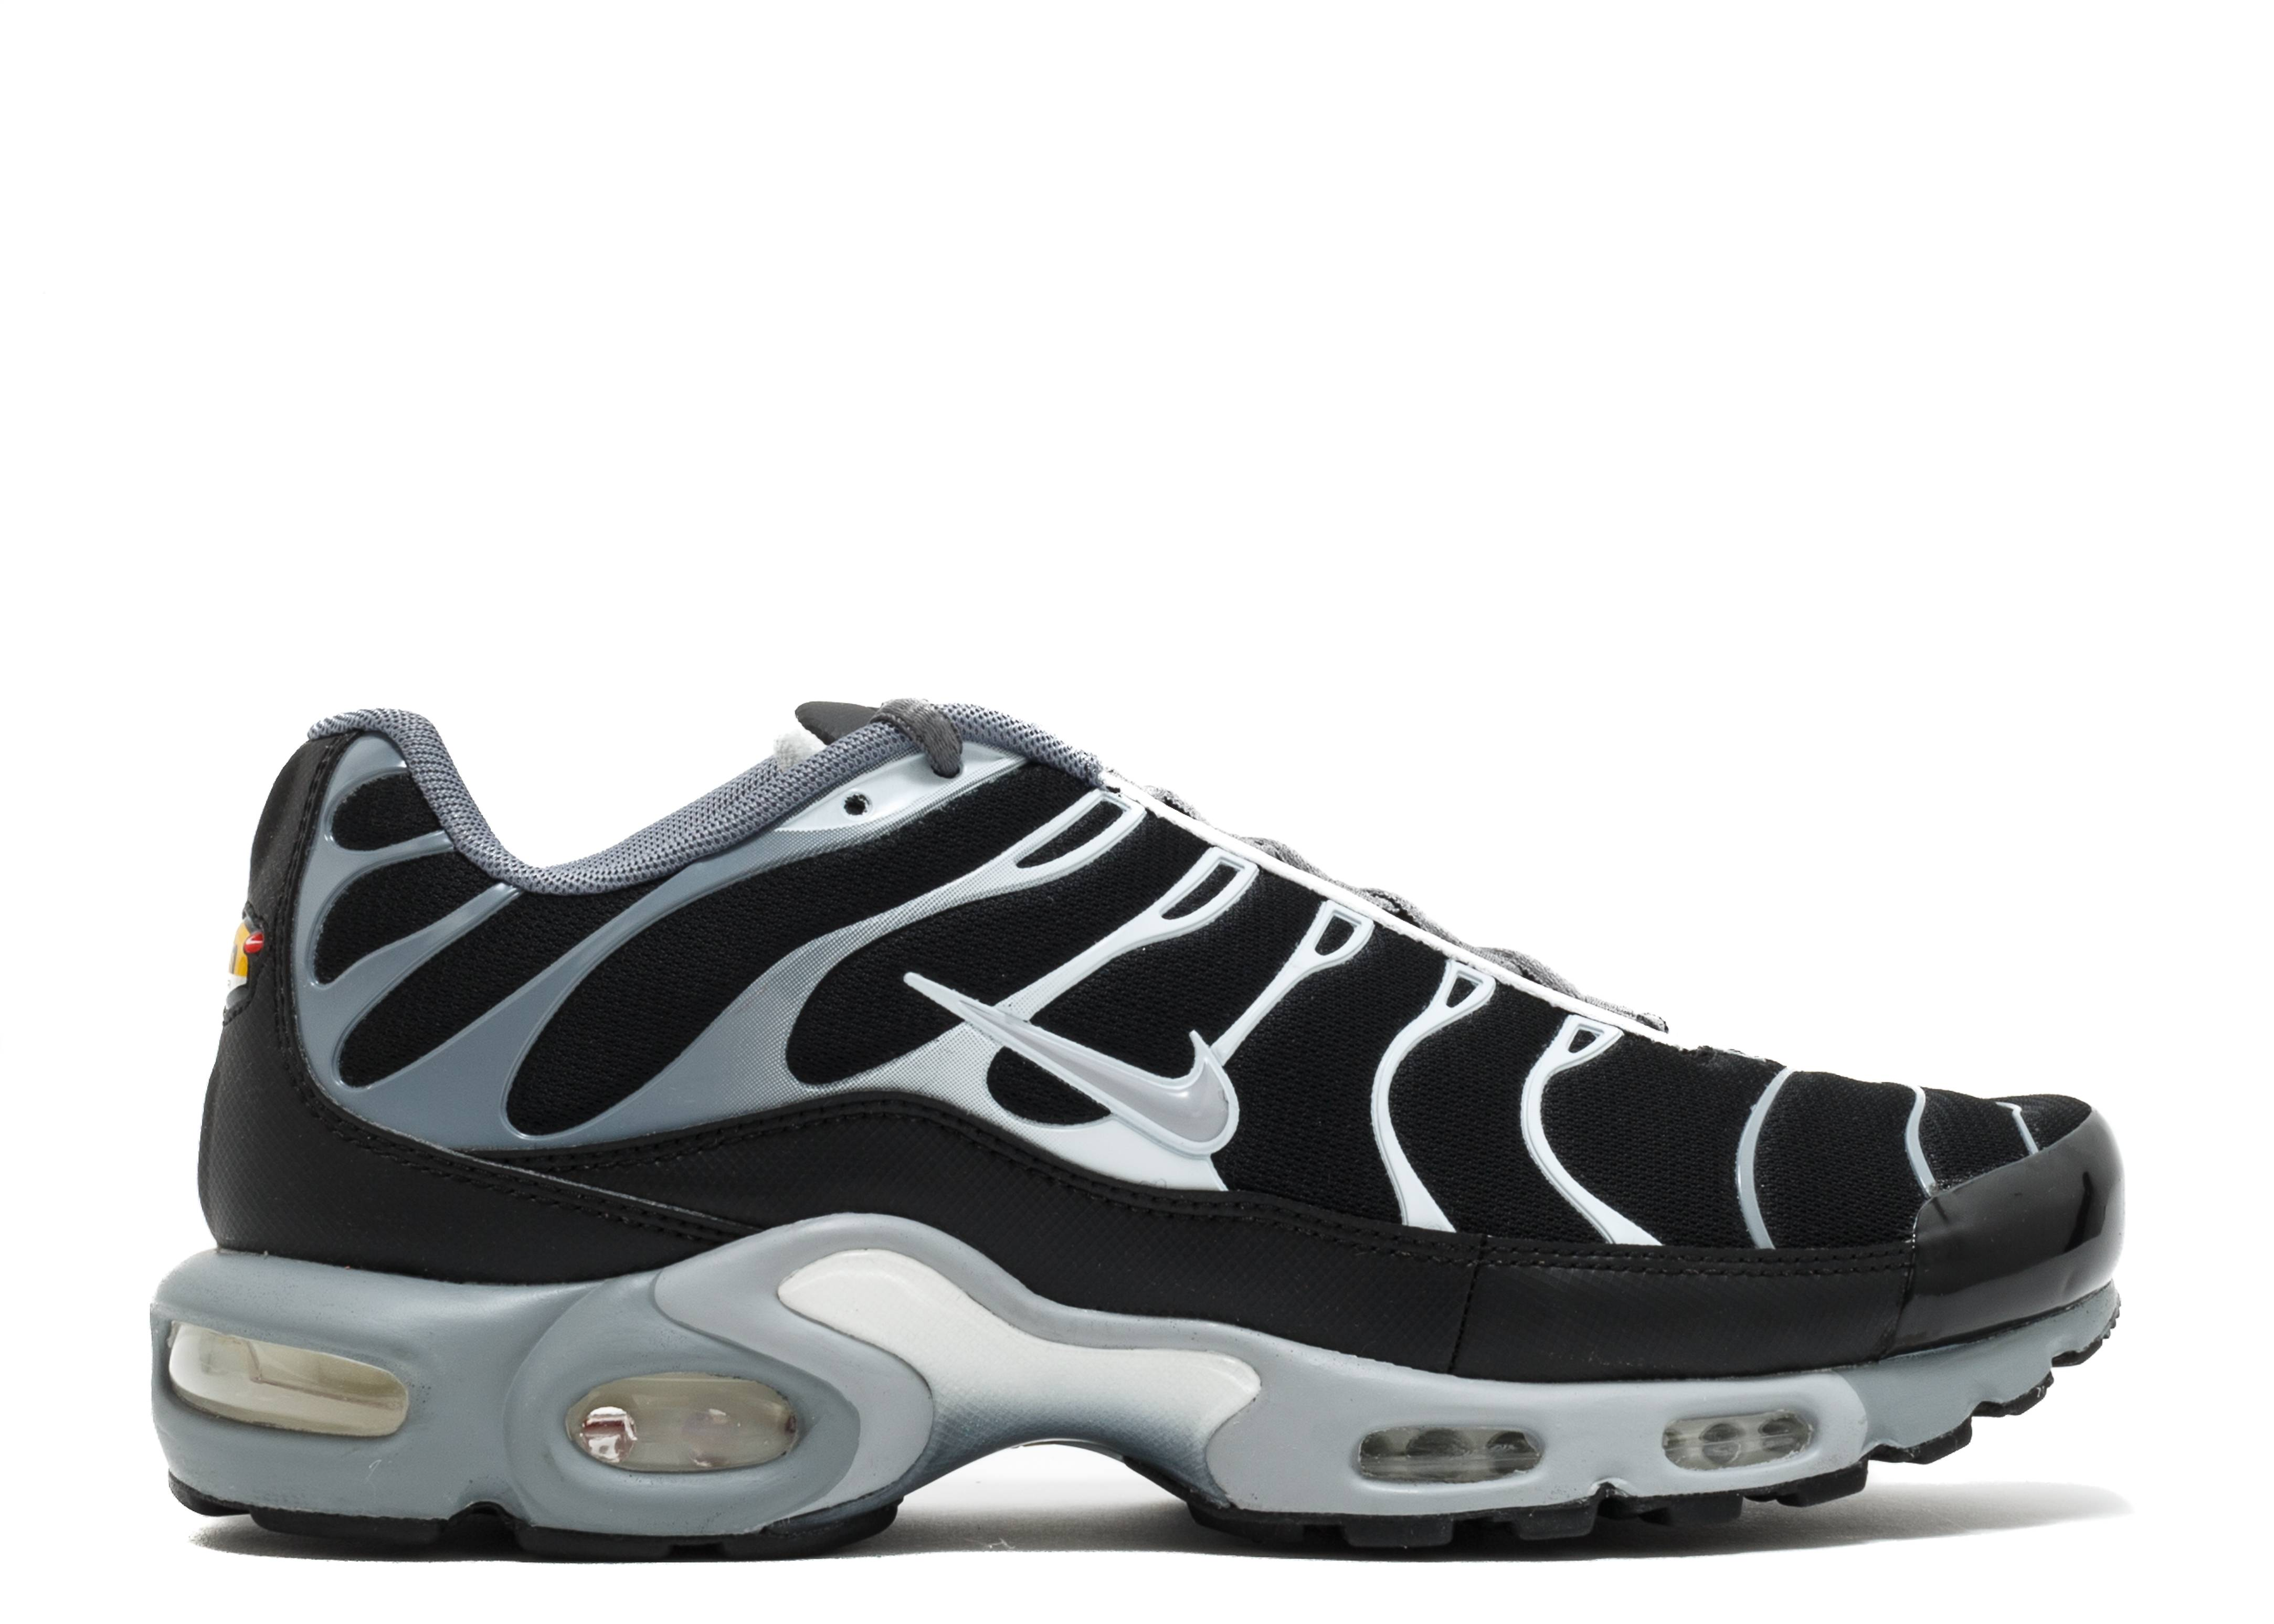 Men's Nike Air Max TN Shoes Silver GreyWhite, Air Max 95